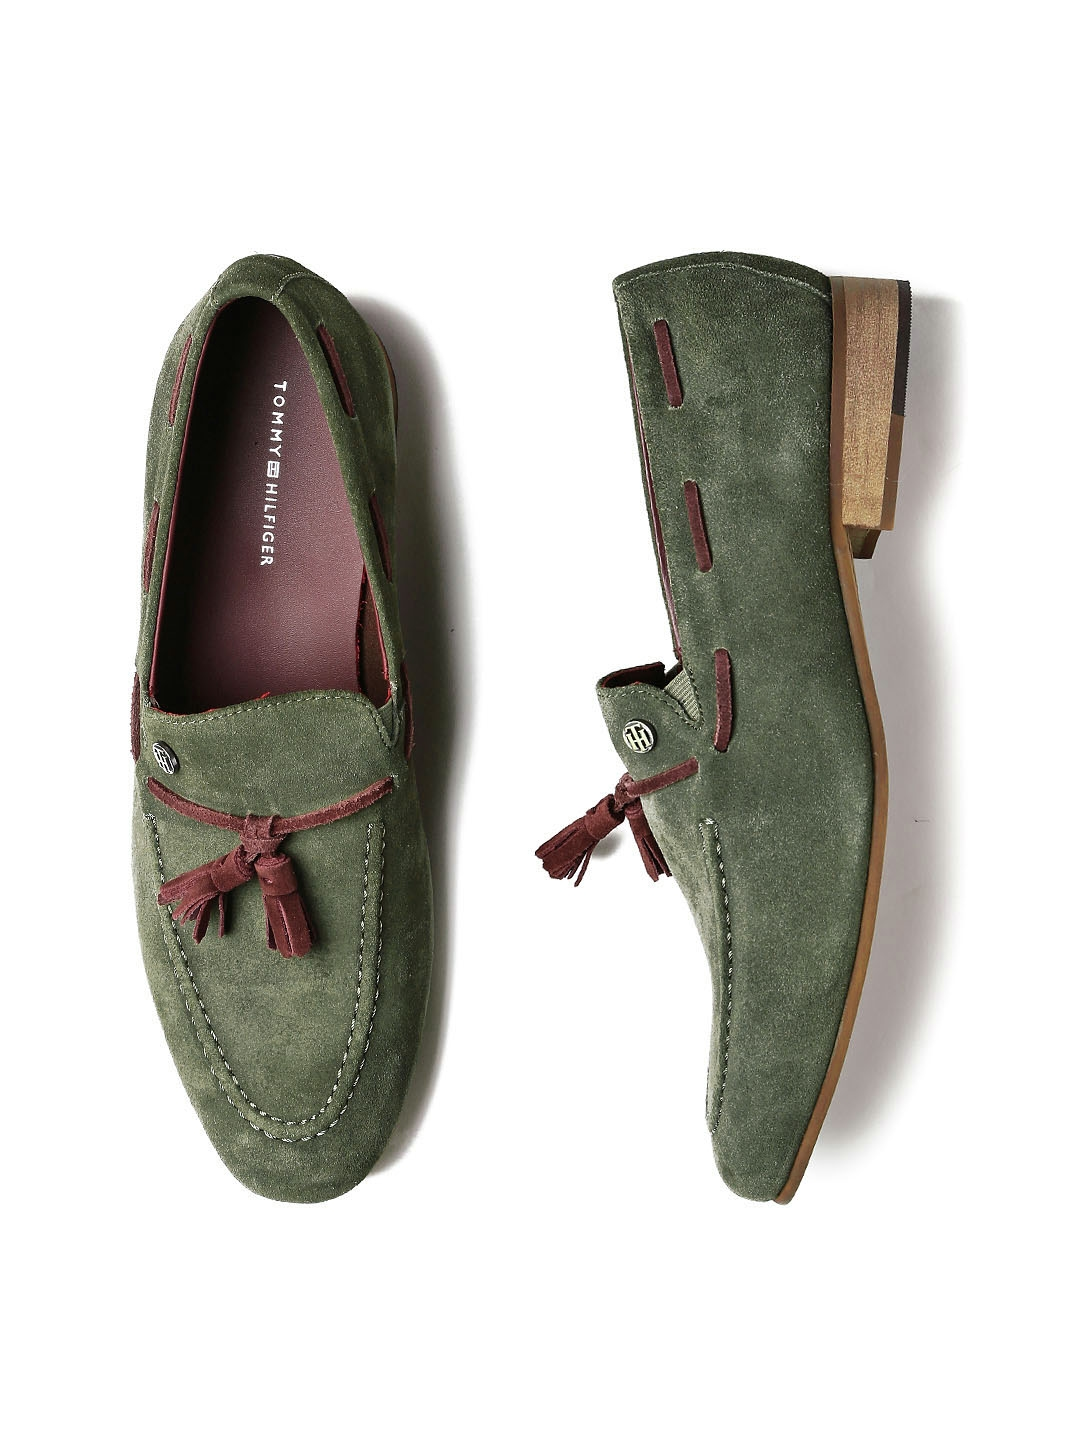 bce03e2ce486 Buy Tommy Hilfiger Men Olive Green Suede Loafers - Casual Shoes for ...